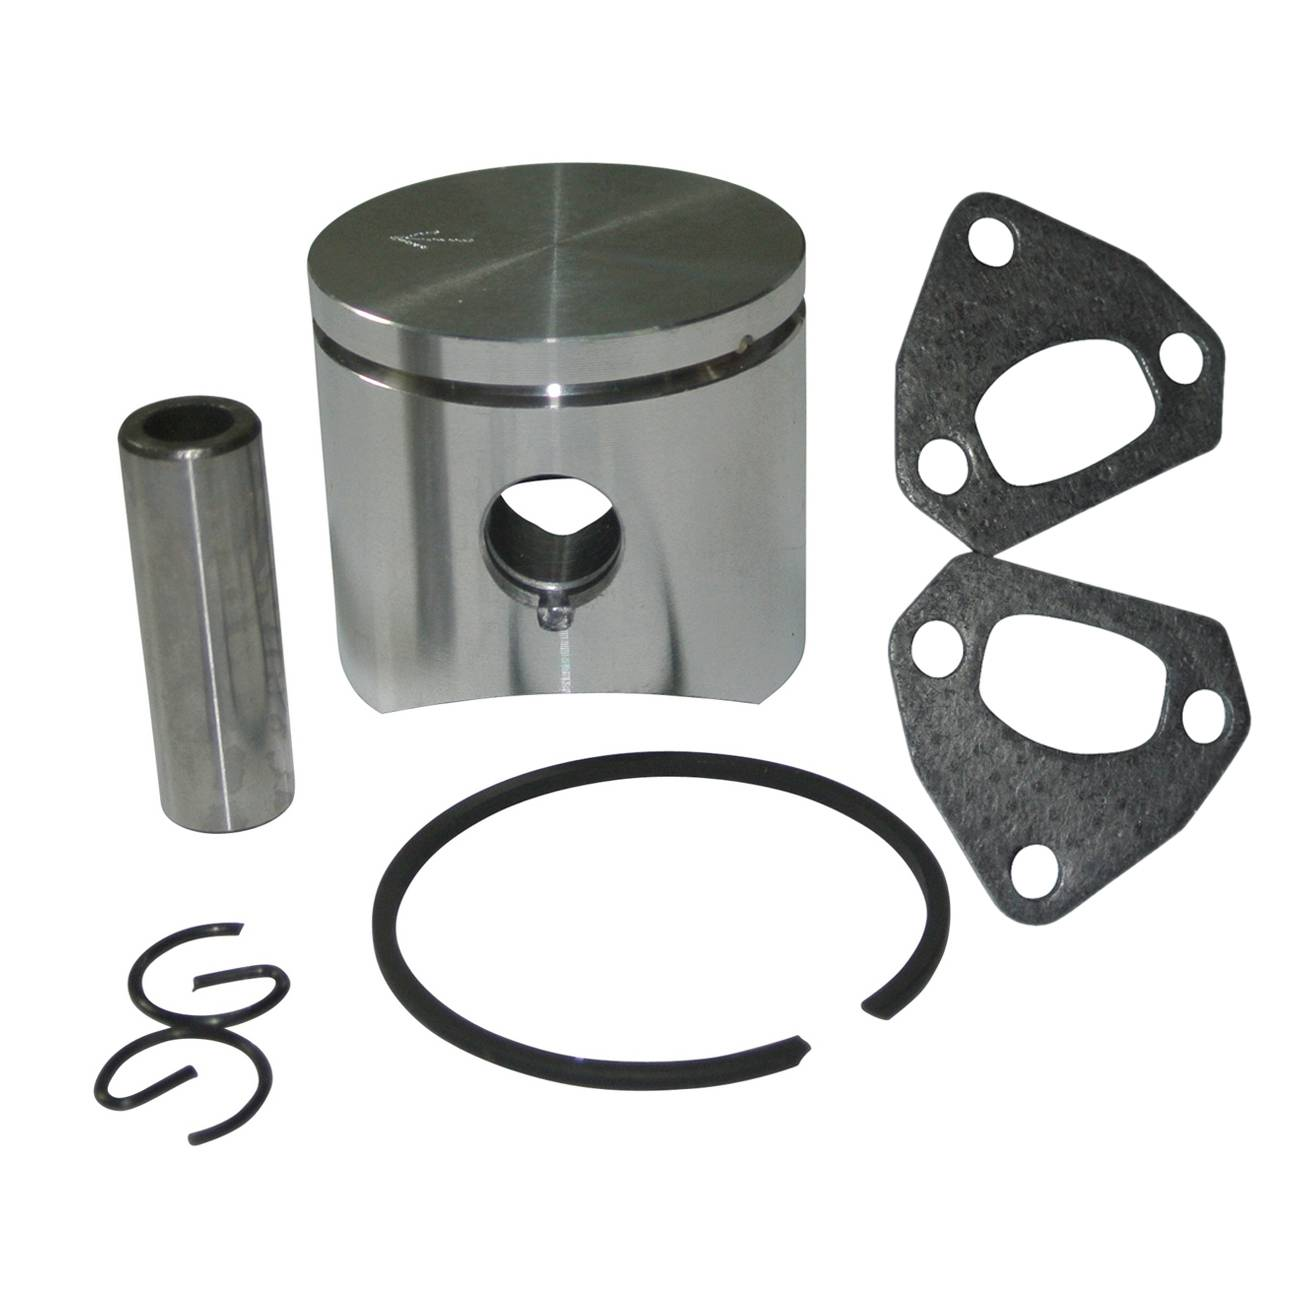 Piston Rings  & Muffler Gasket For Husqvarna 36 41 142 141 137 136